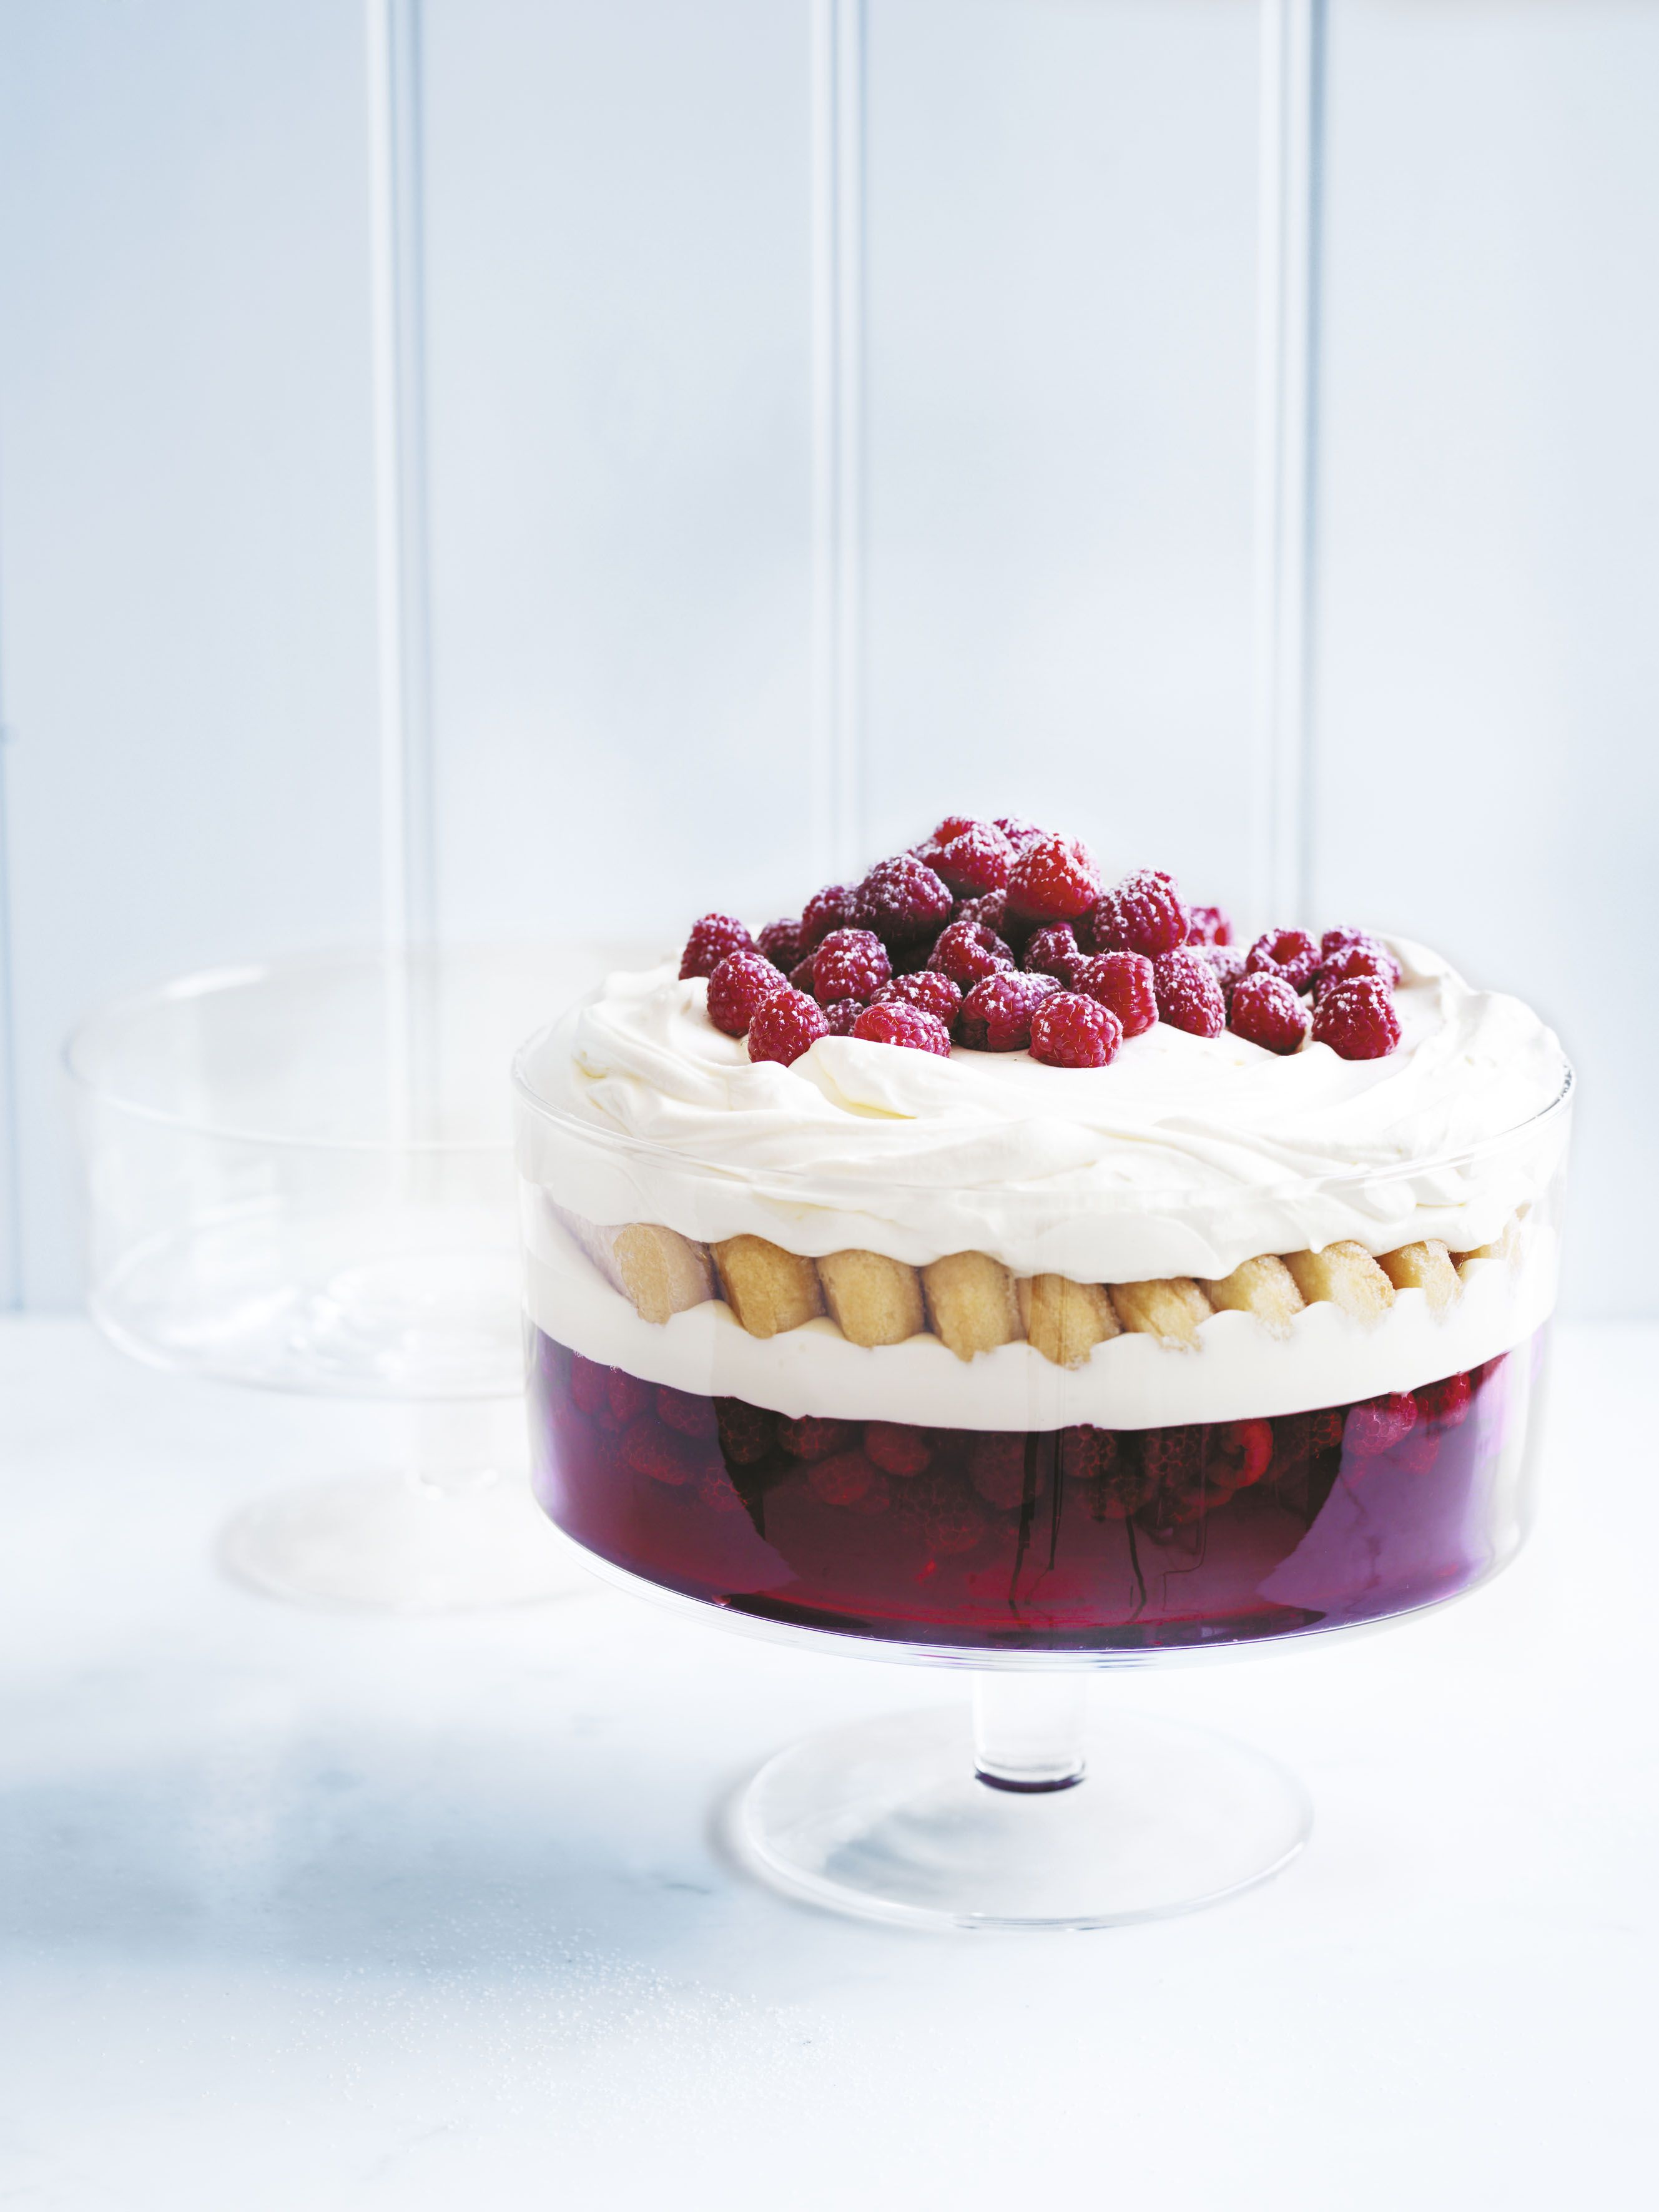 Festive trifle served in donna hay for Royal Doulton glassware